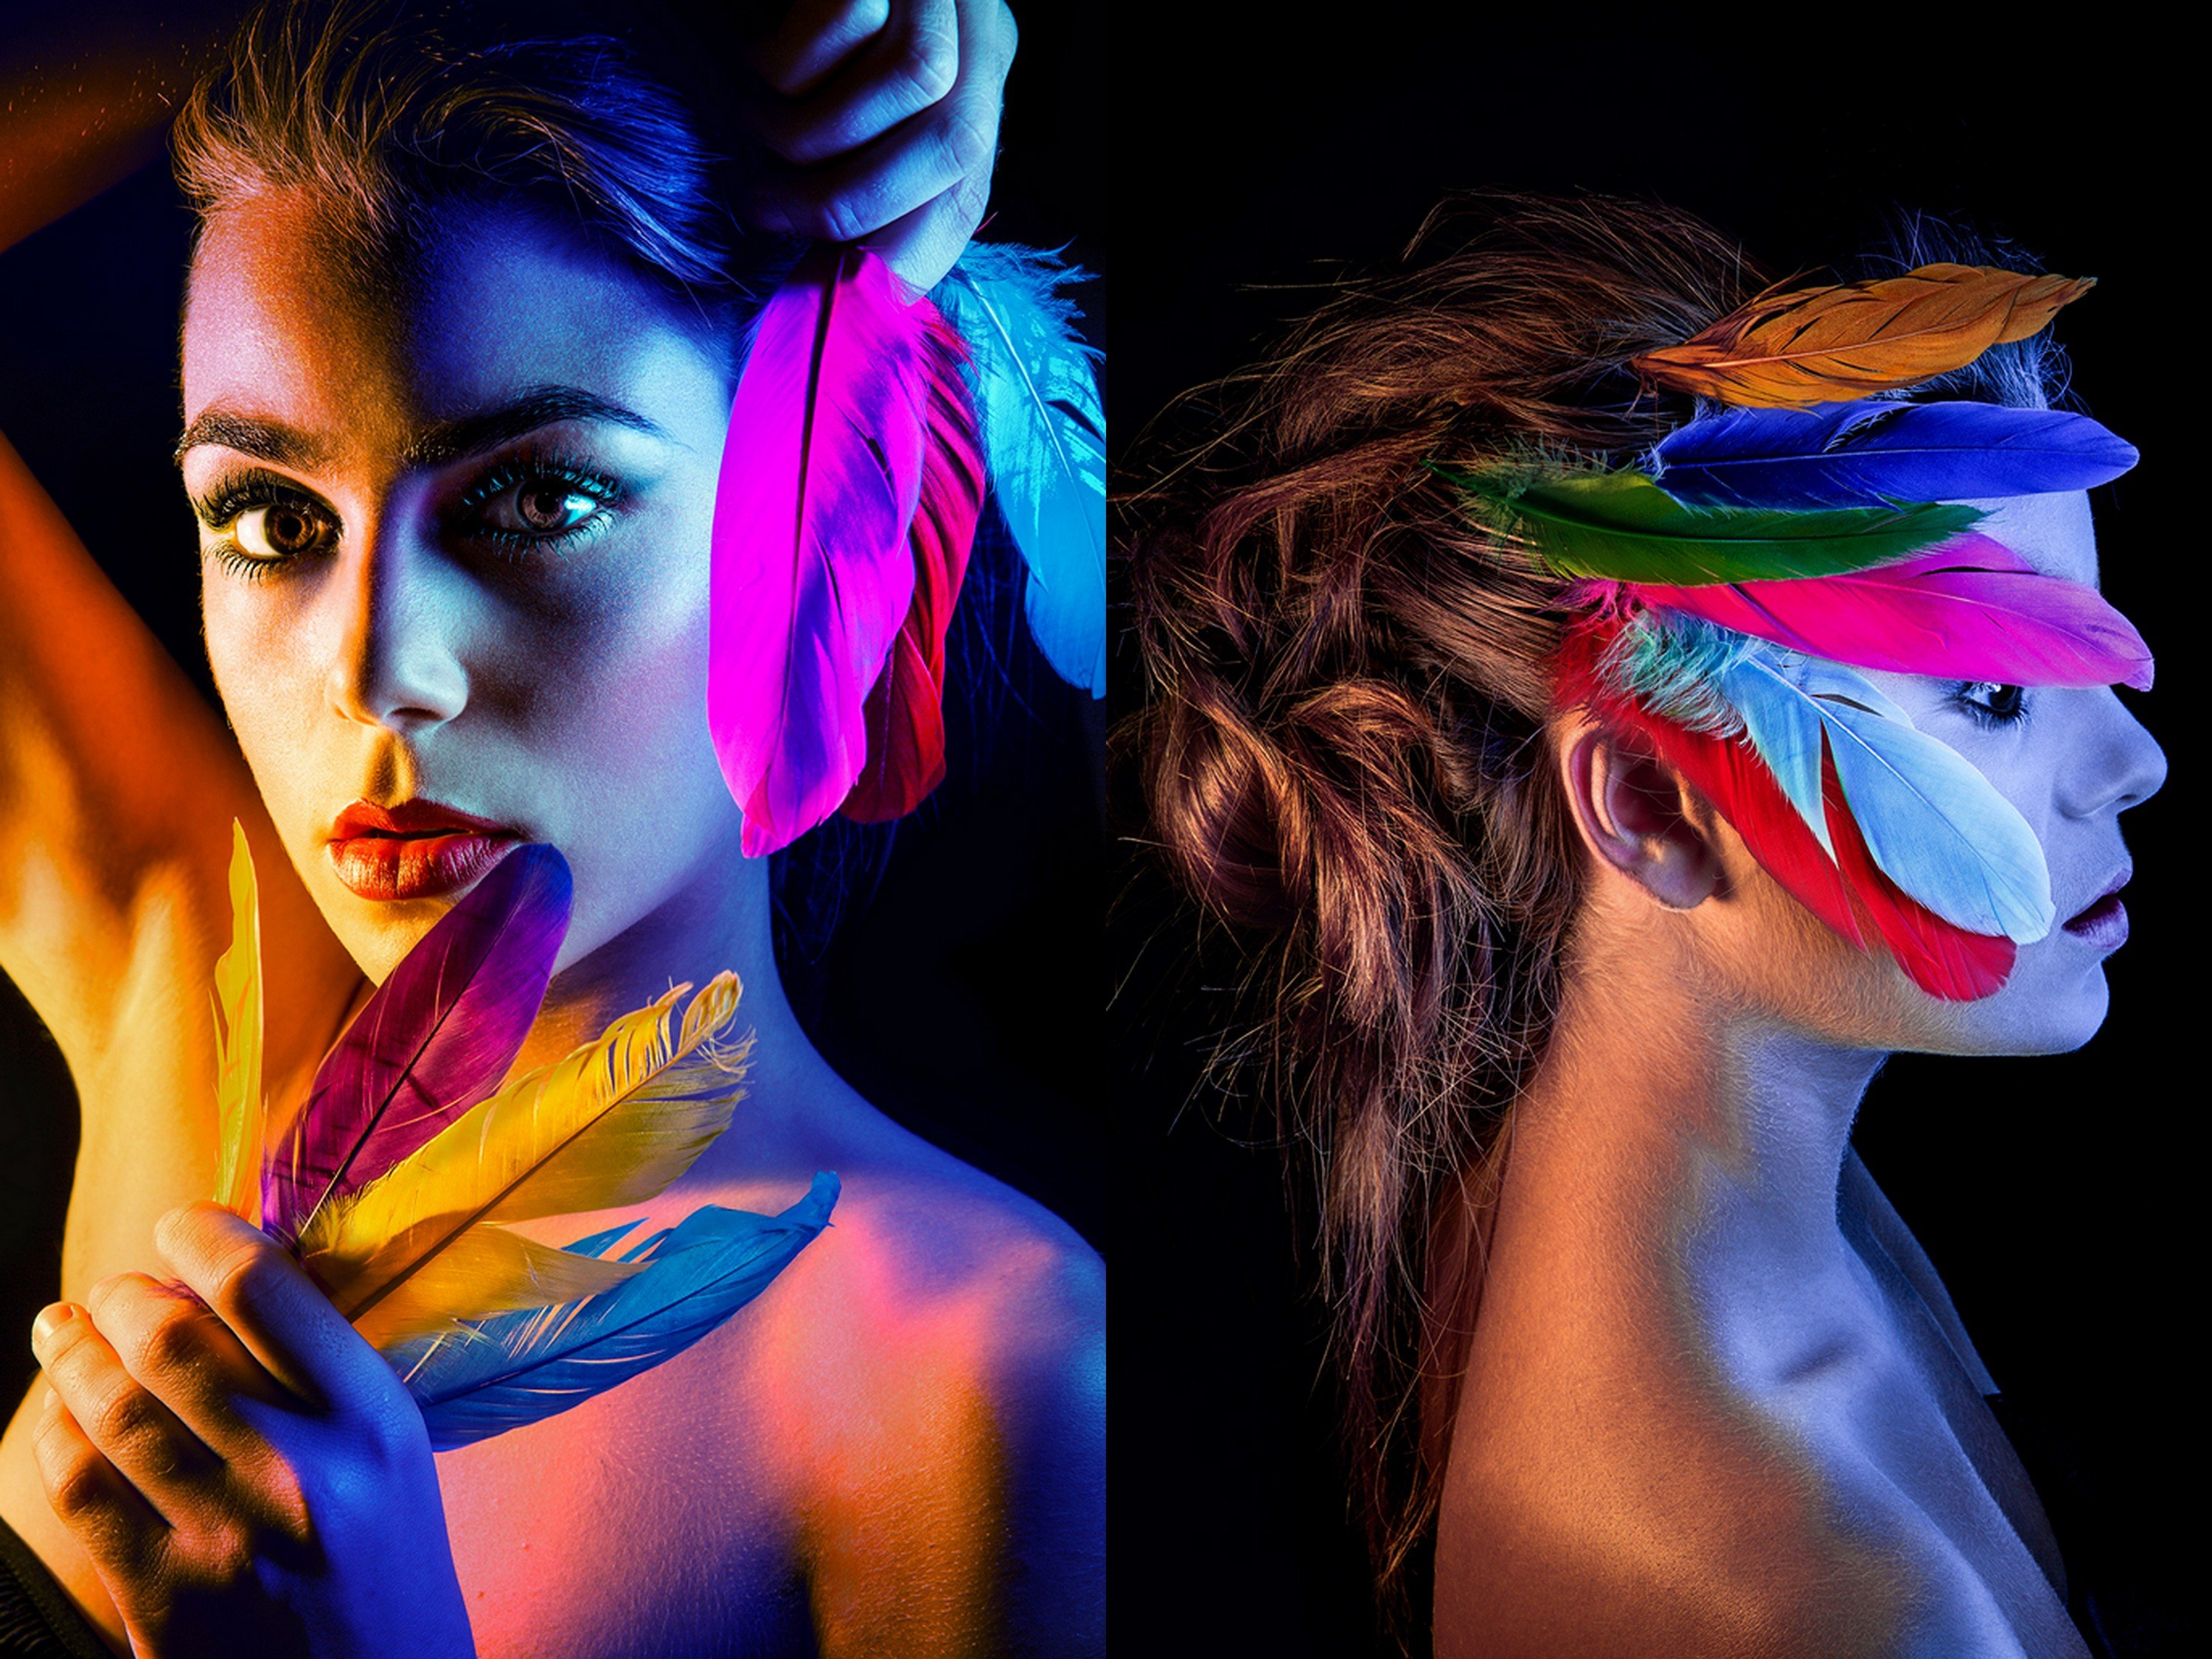 creative beauty art photography